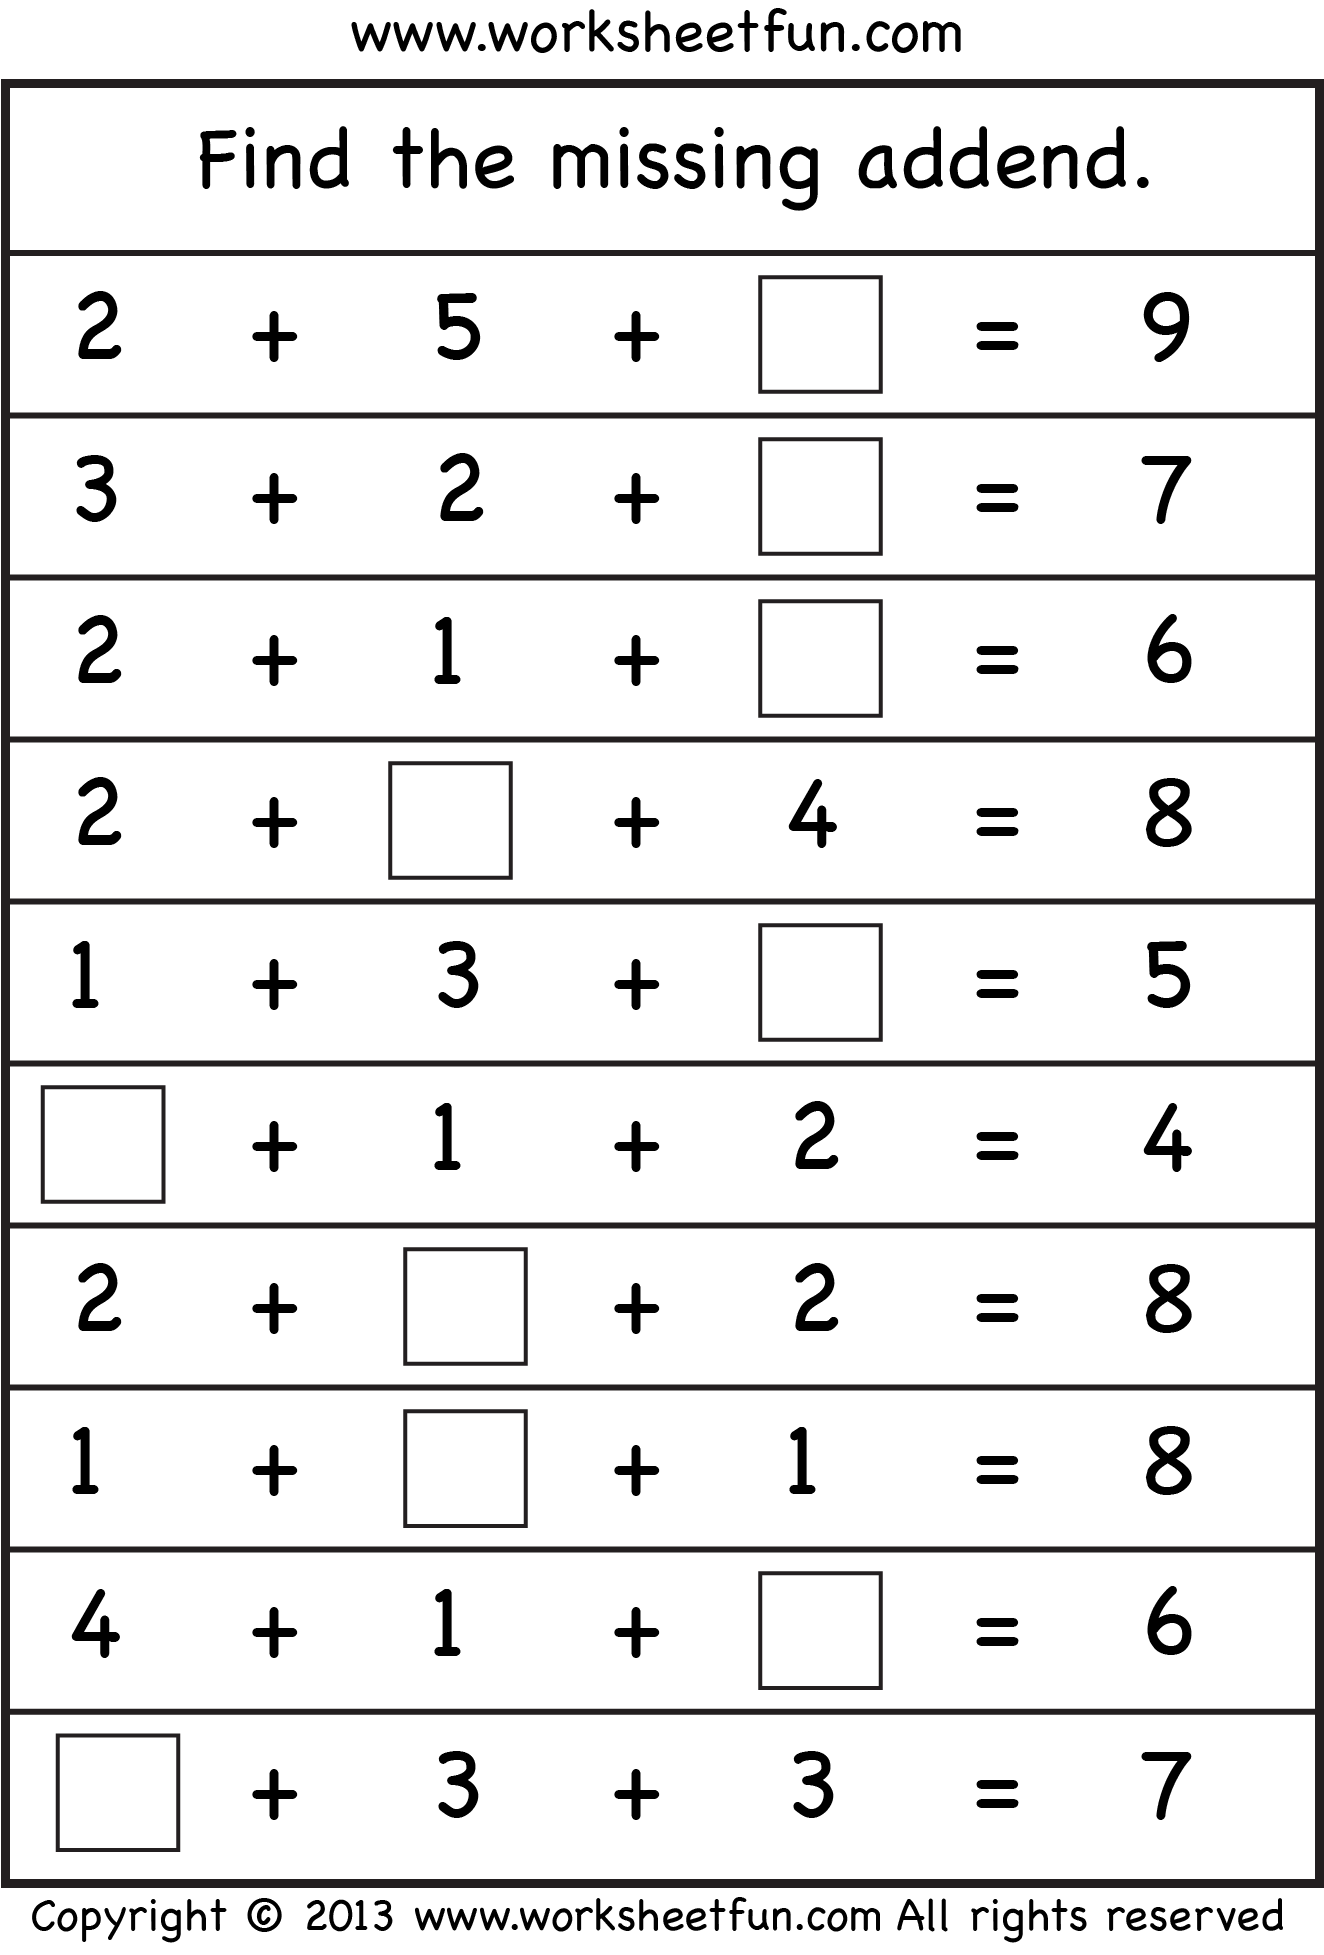 worksheet Addends Worksheets lots of math worksheets to print out school pinterest missing addend four free printable worksheetfun